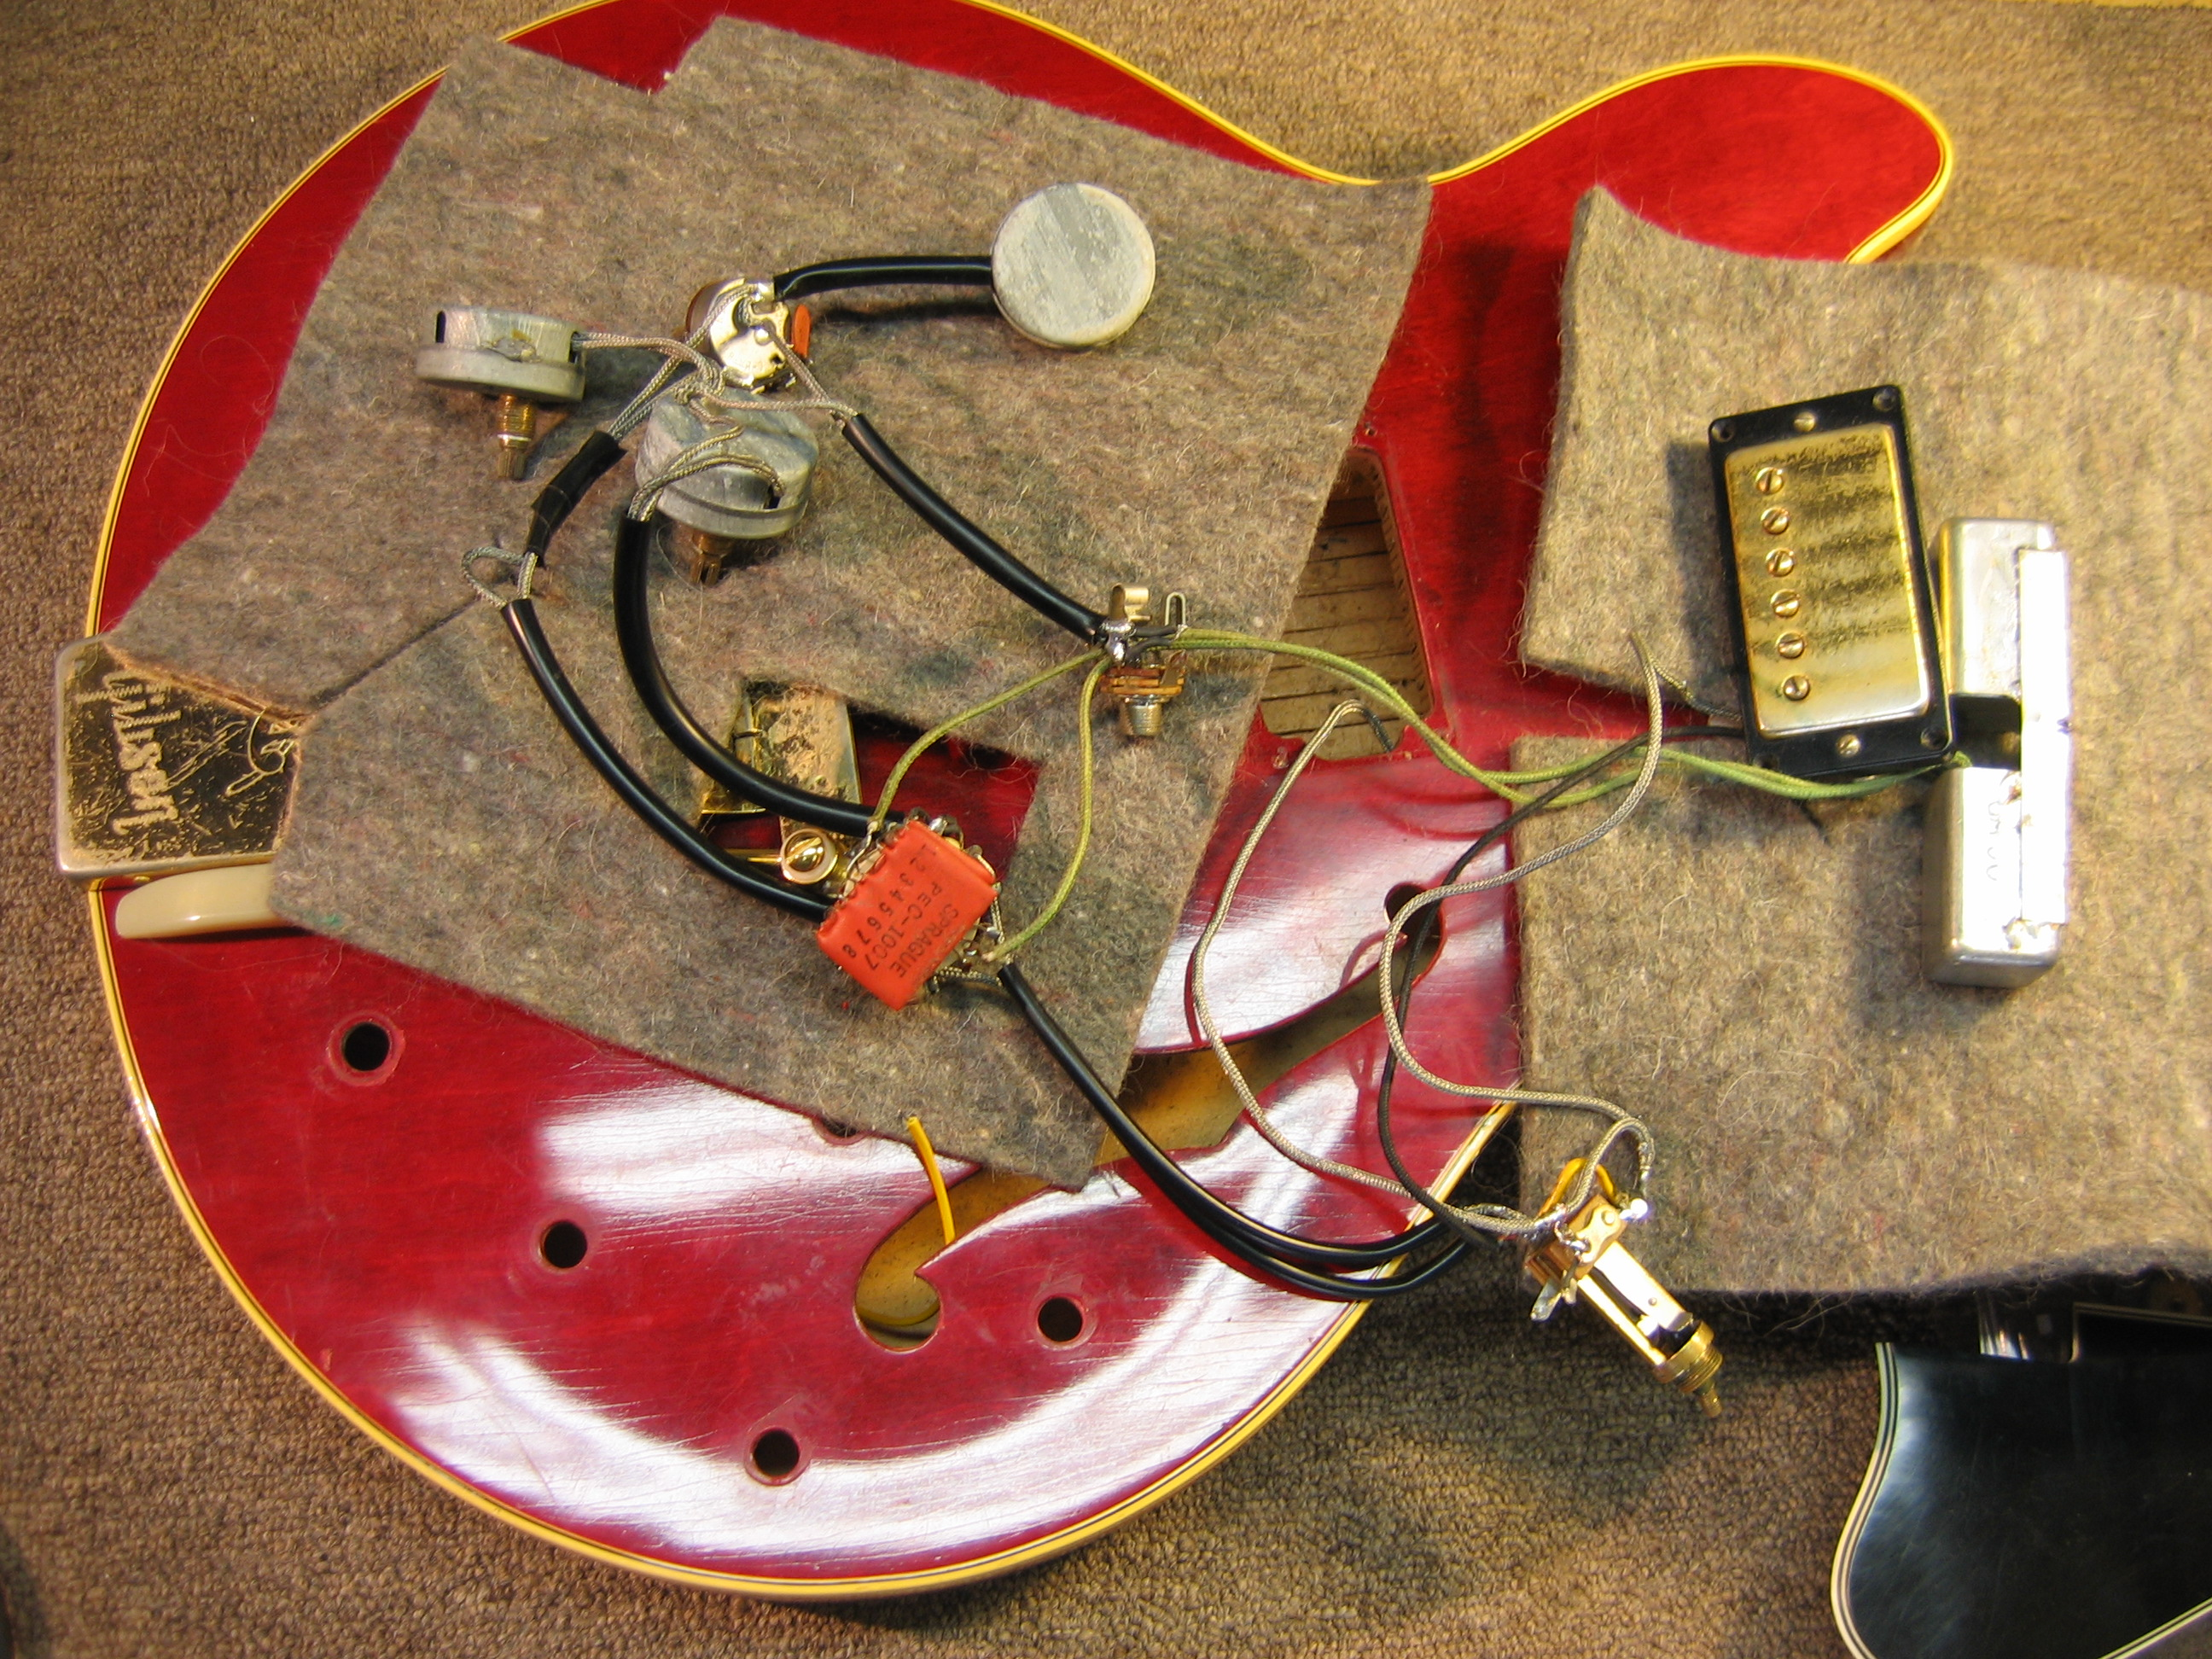 es 345 electr 003 vintage 1965 gibson es345 wiring repair chicago fret works gibson guitar wiring at readyjetset.co